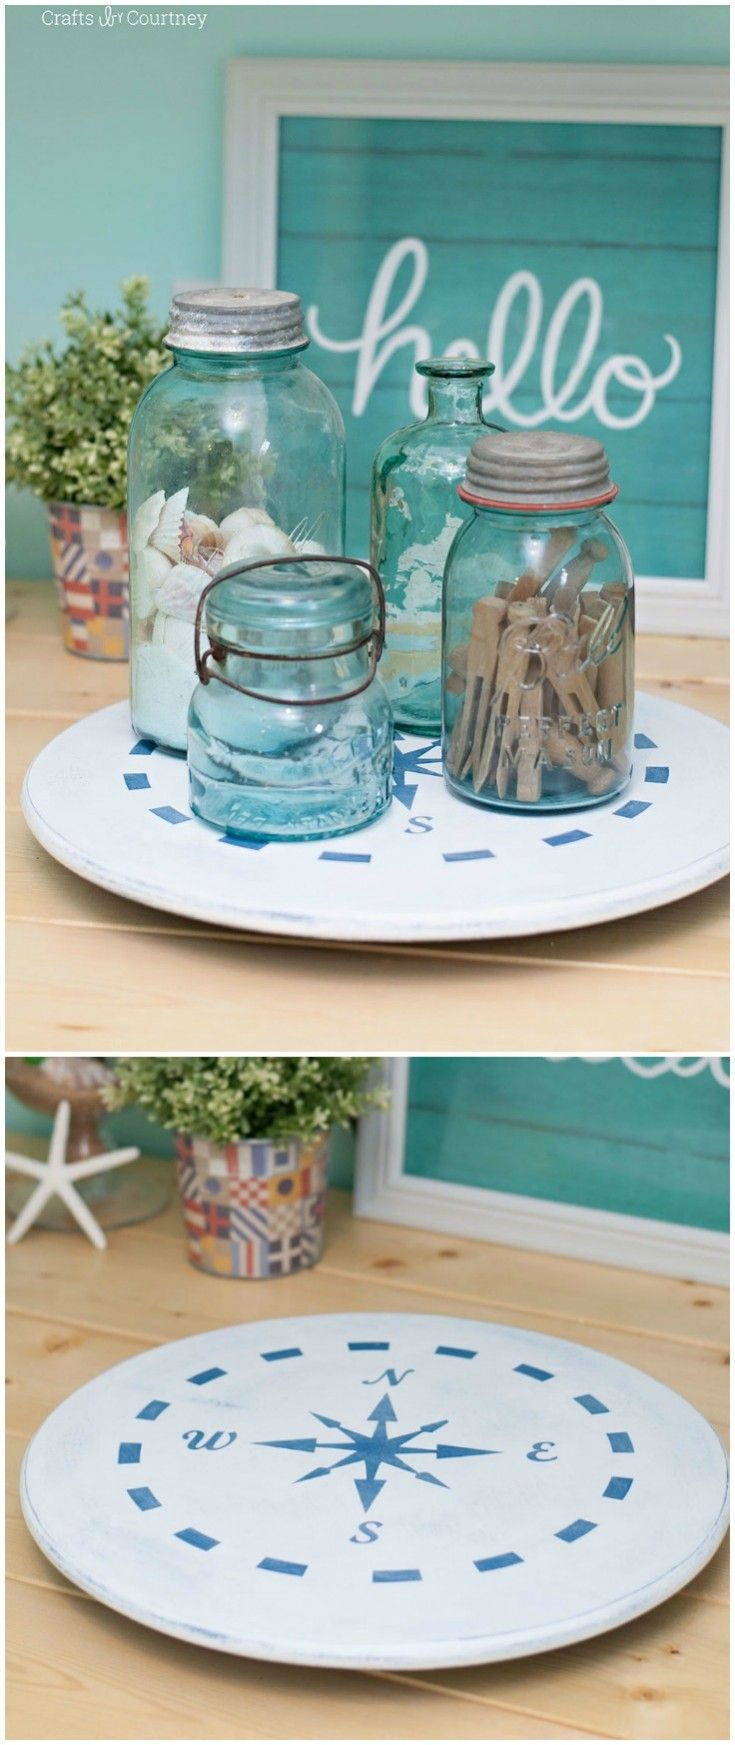 Add a nautical touch to your kitchen with this unique DIY lazy susan makeover! Use a stencil to create a compass design with chalk paint and Mod Podge. via @modpodgerocks